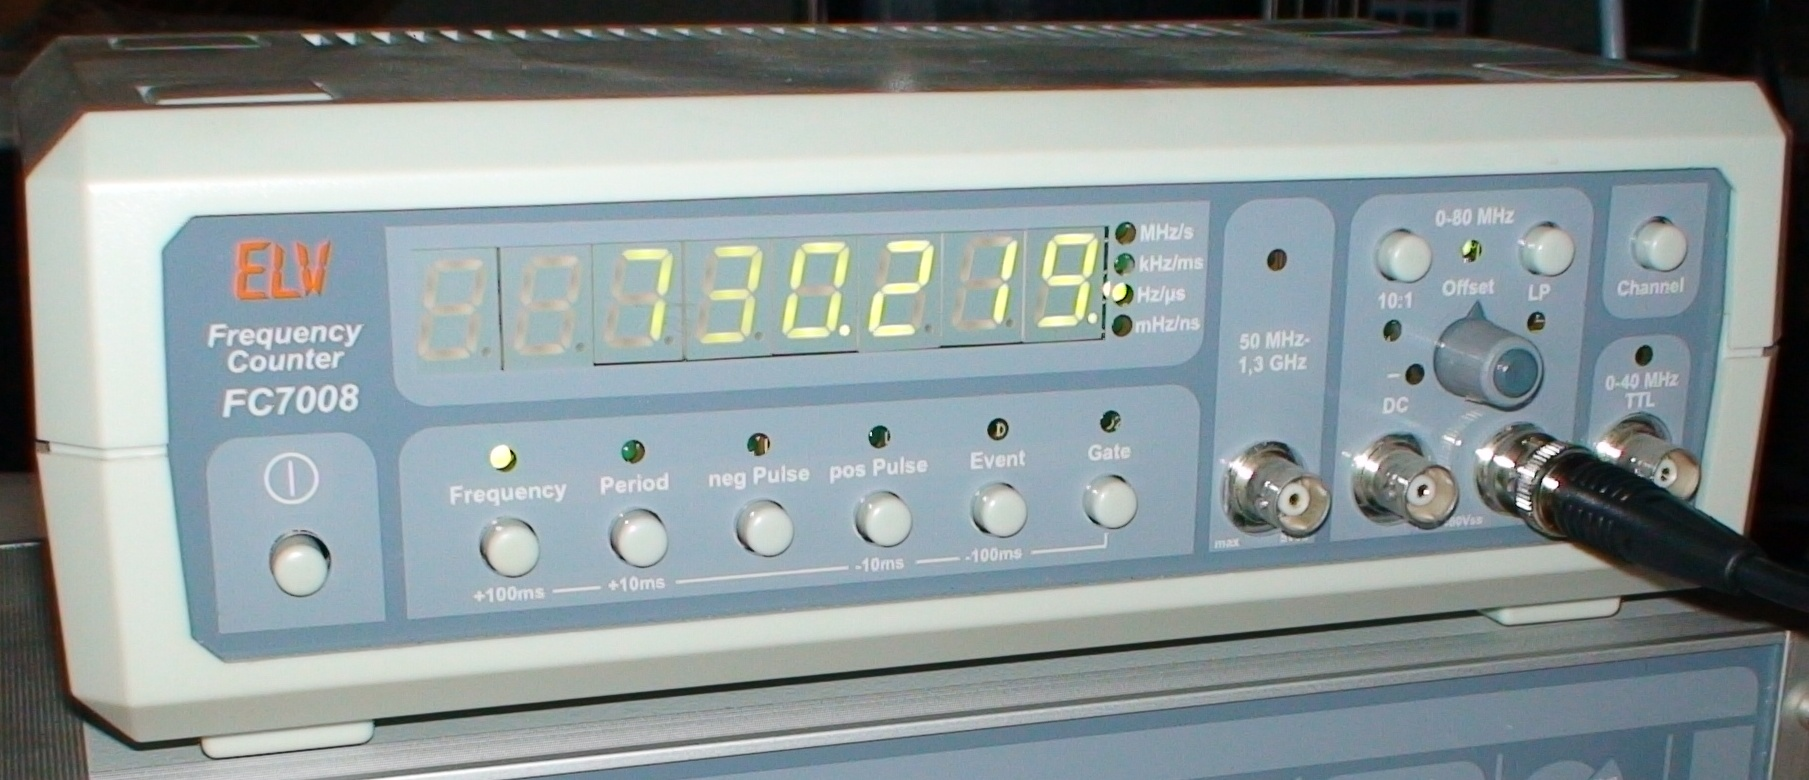 Photo Eye Frequency Counter : File frequency counter g wikimedia commons